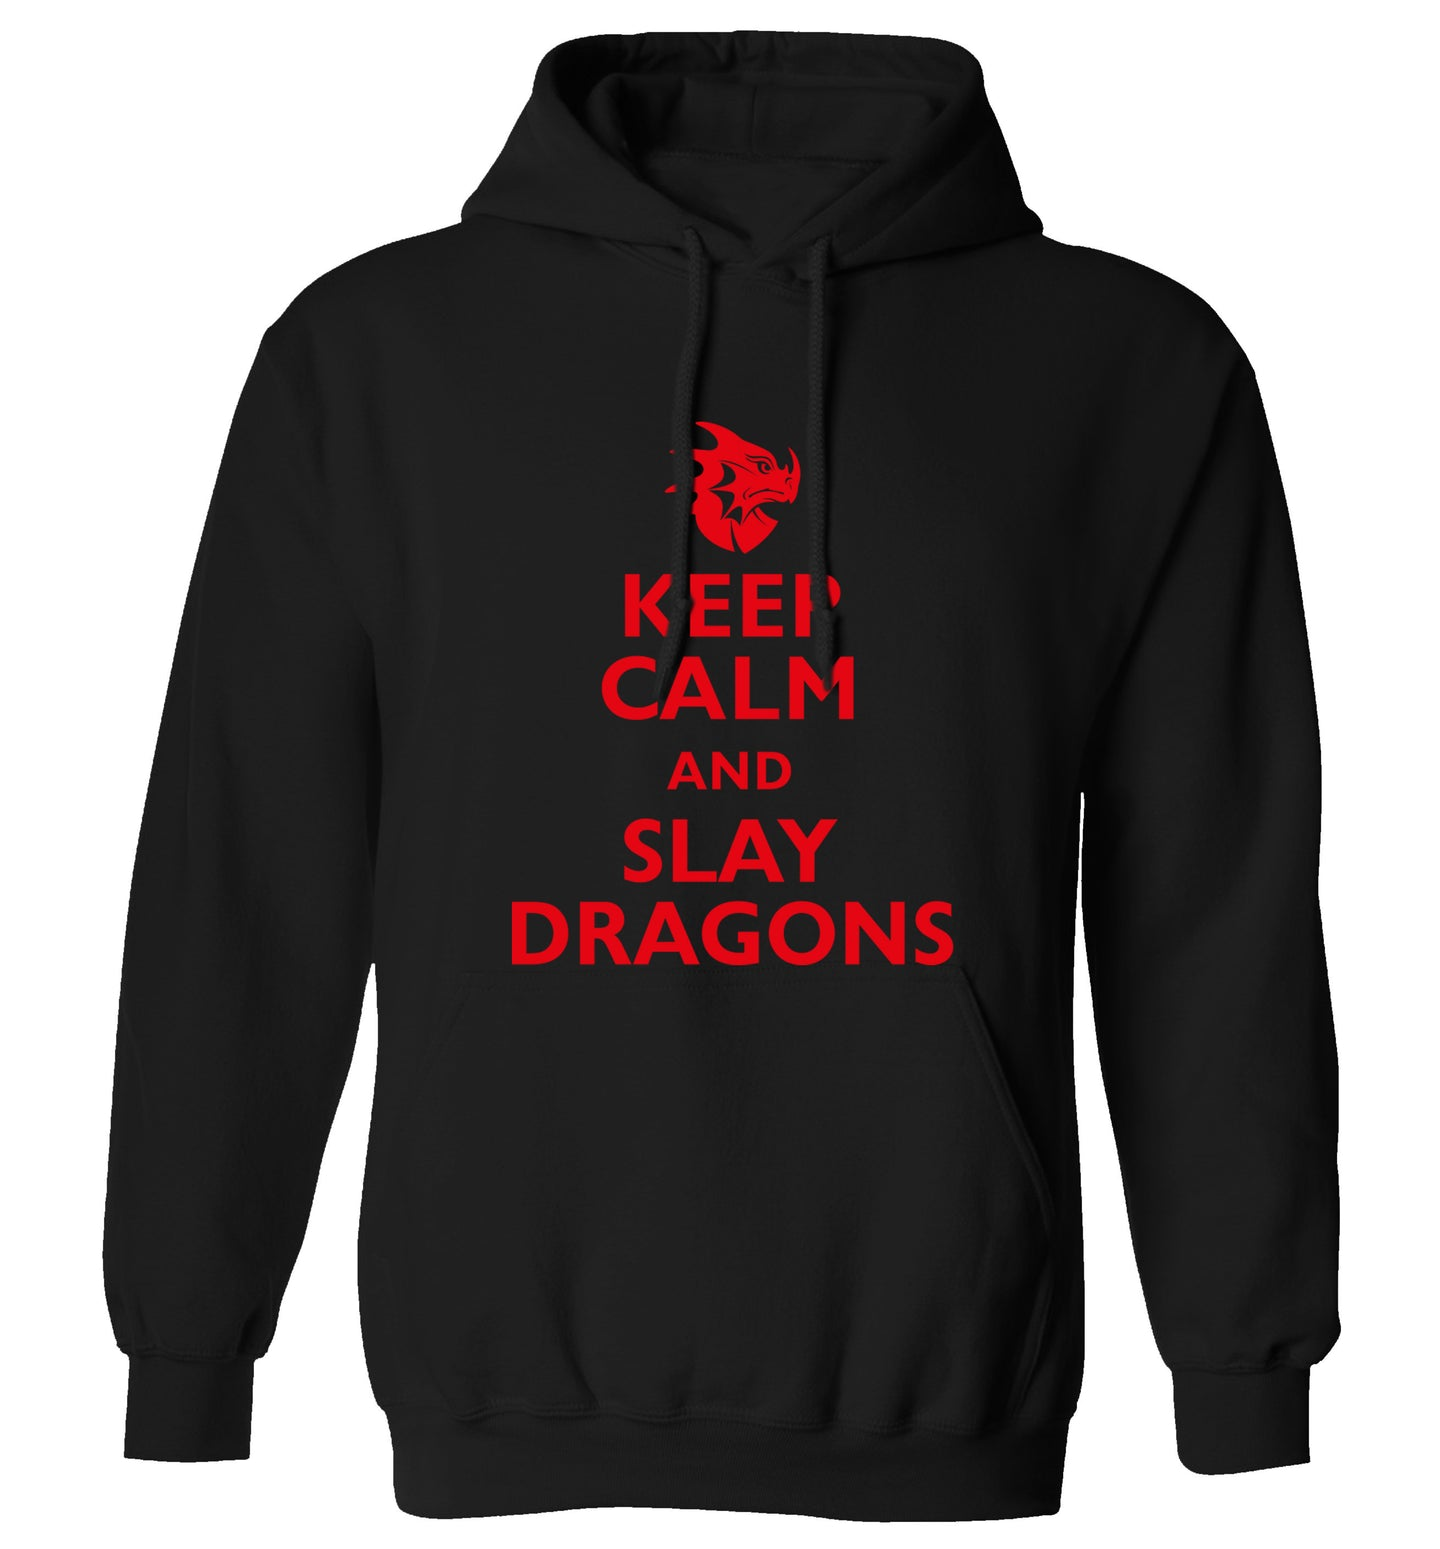 Keep calm and slay dragons adults unisex black hoodie 2XL